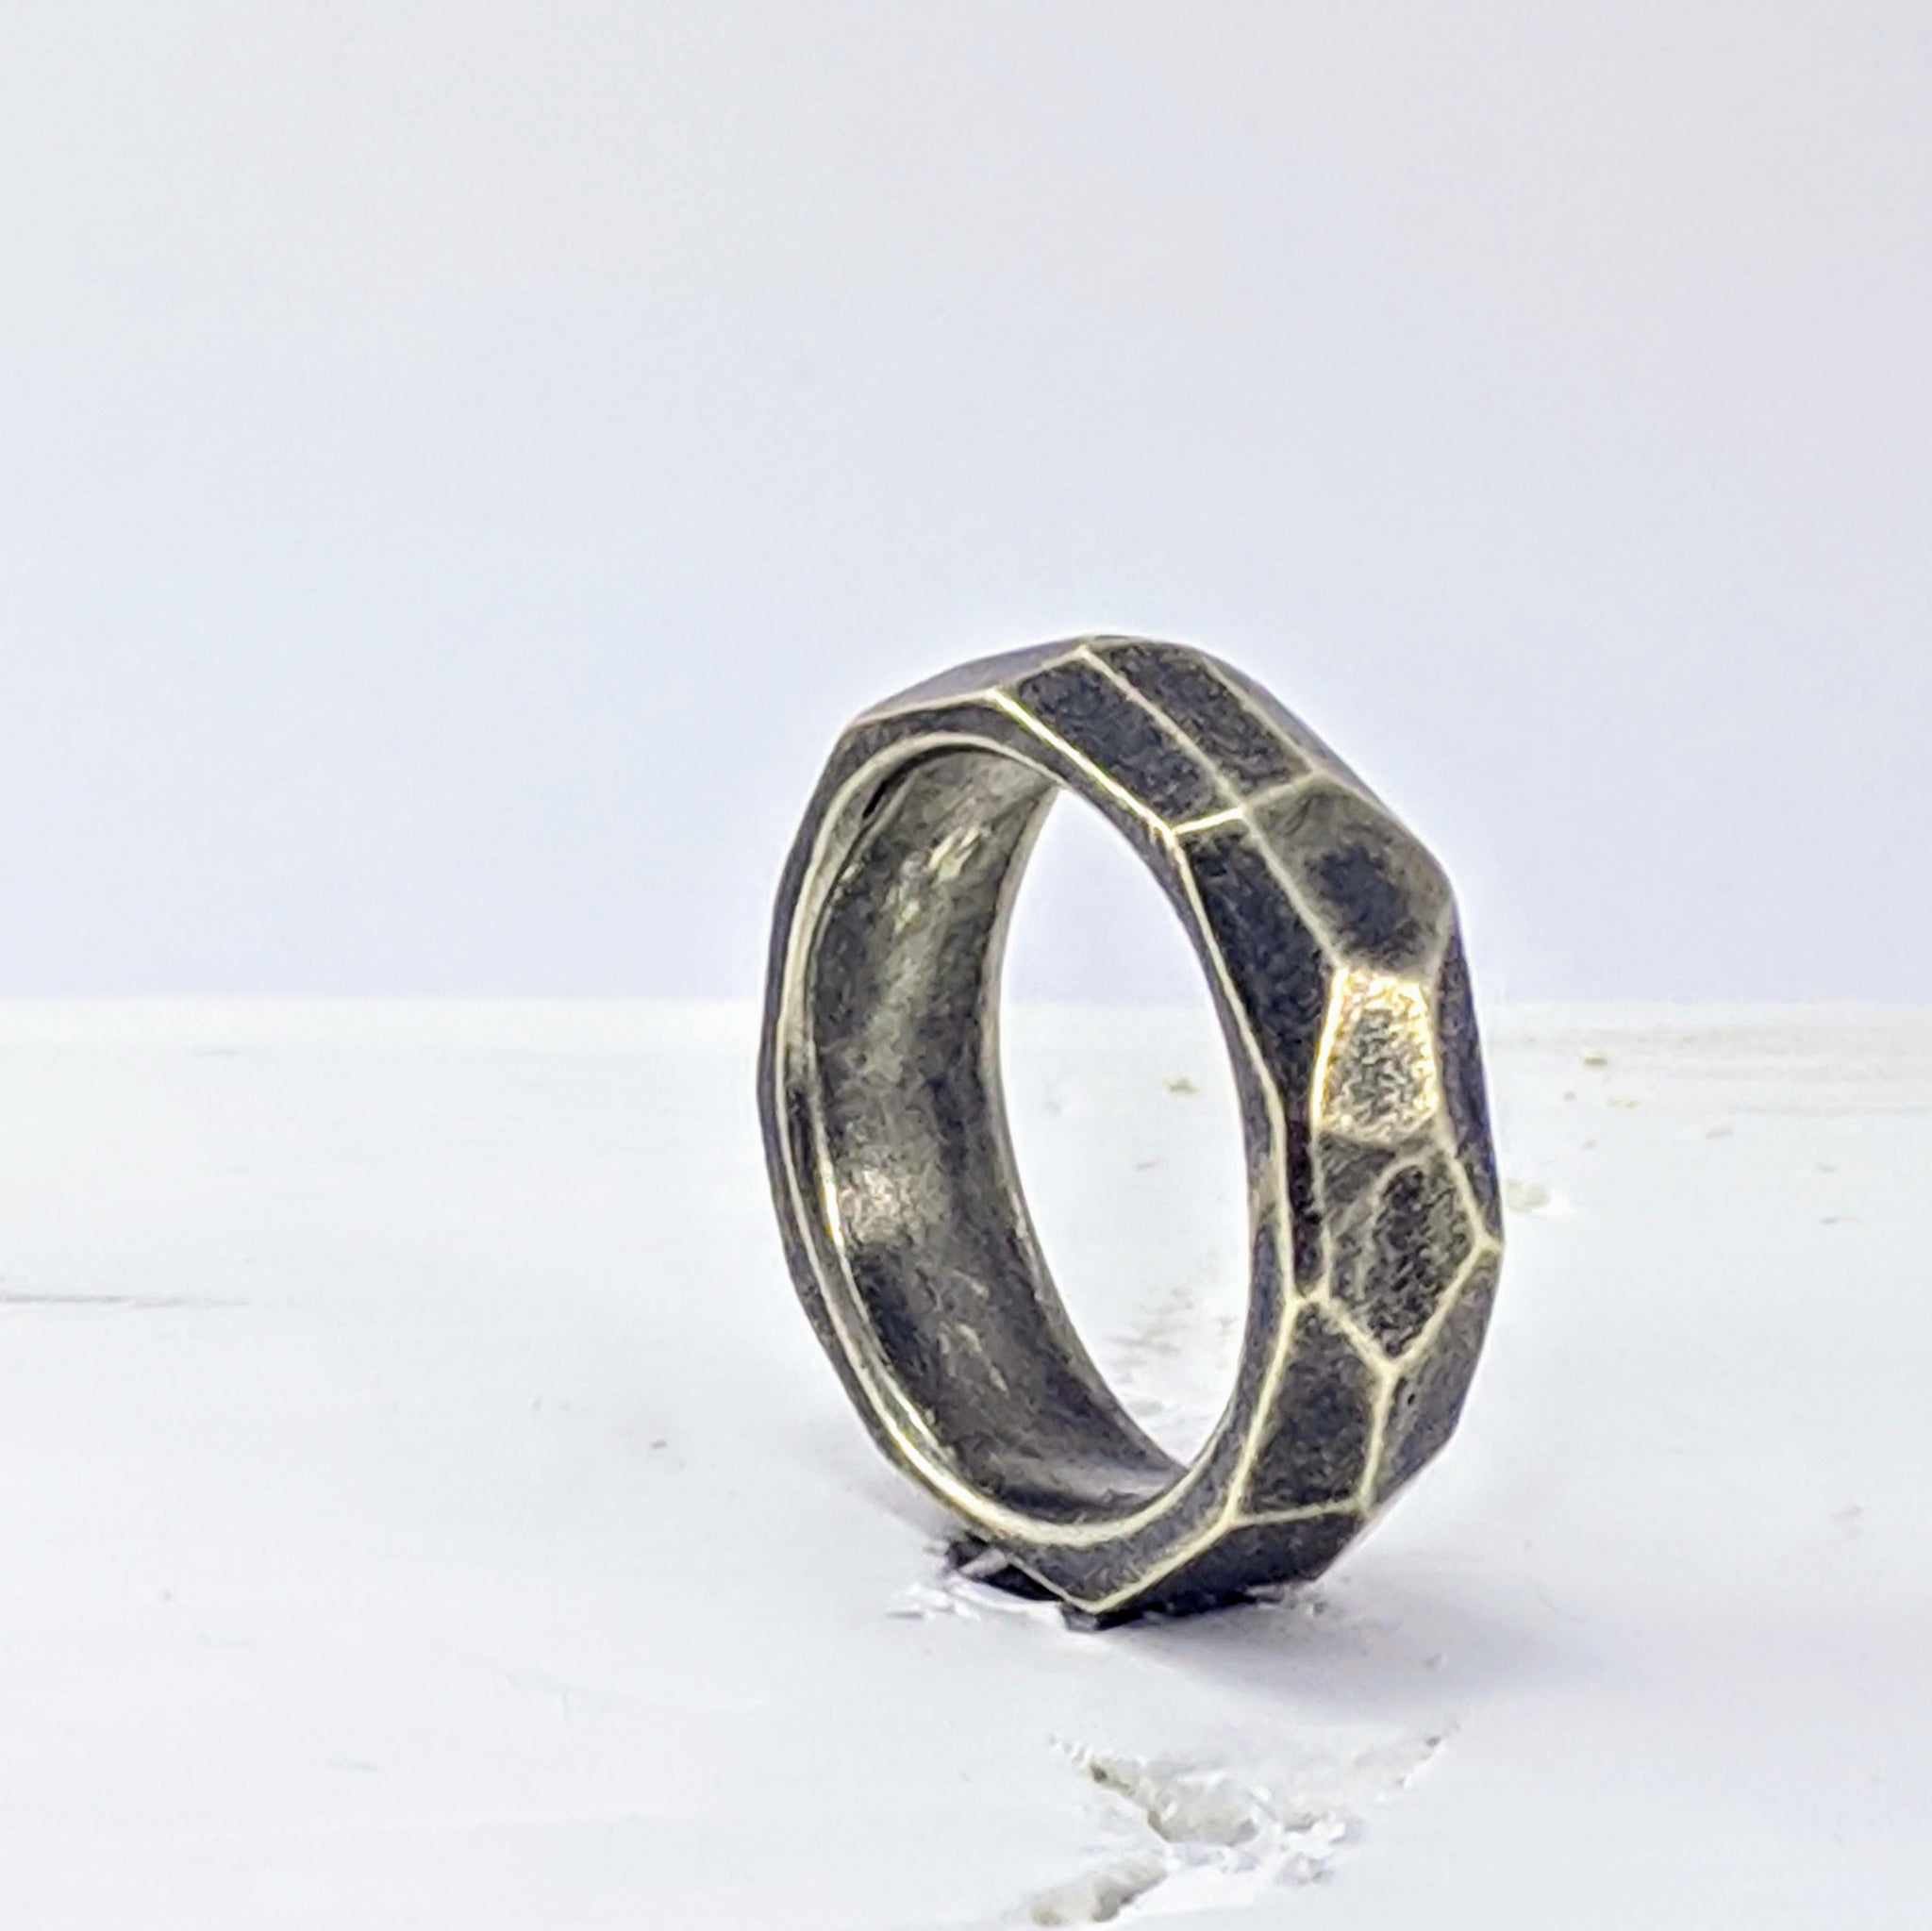 Handmade in New Zealand, this is a chunky silver ring with facets hand carved in wax and cast. by Buster Collins